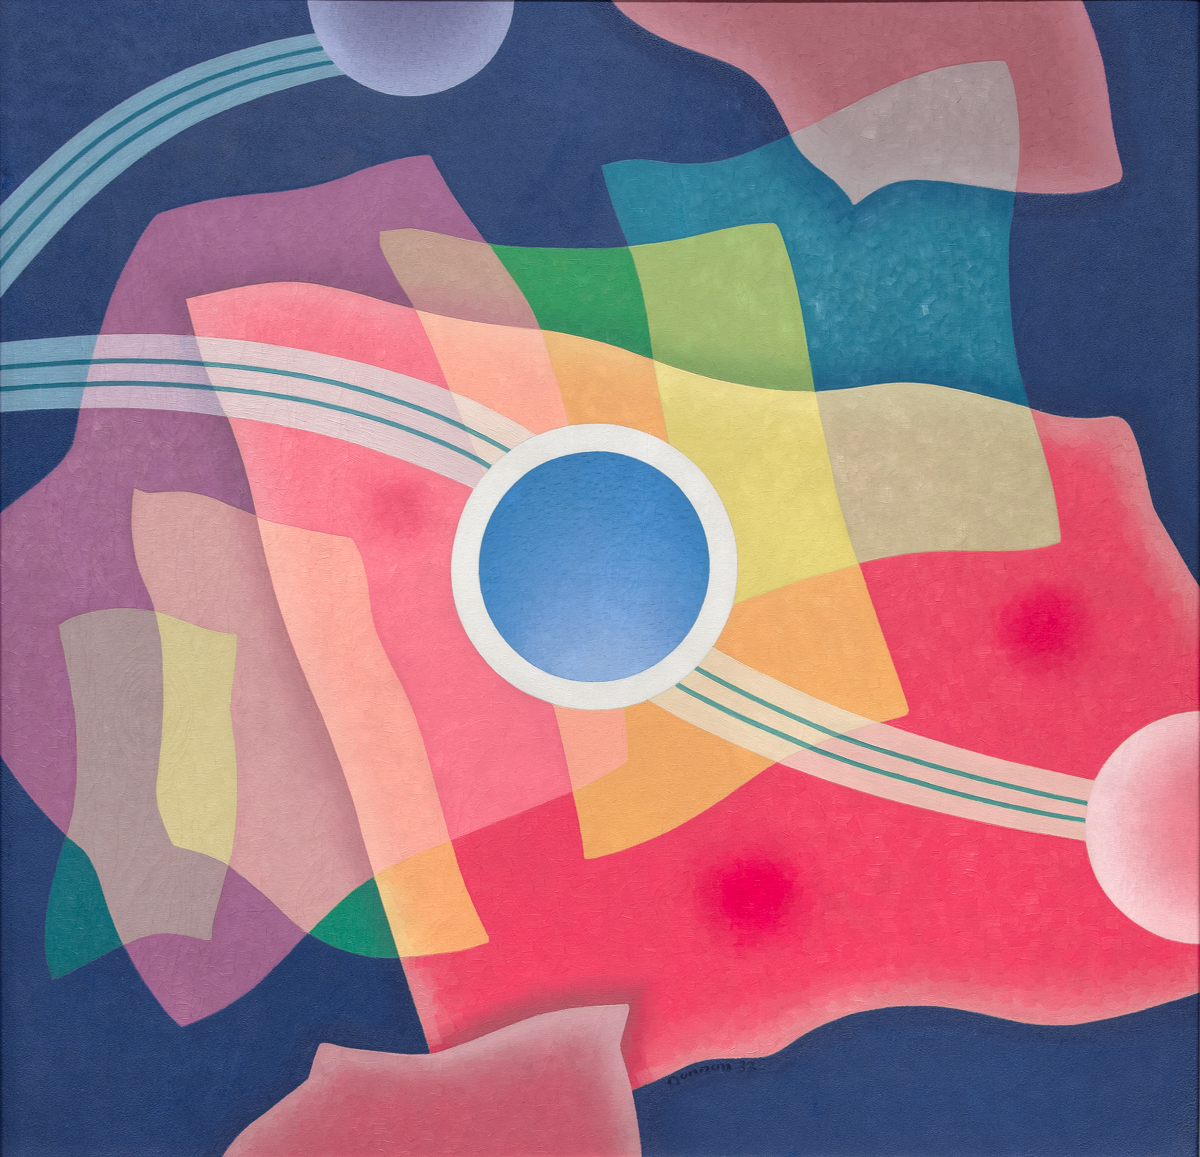 Oil painting in abstract style. Purple background with pastel coloured angular shapes in layers on top of background colour. White circle with blue interior in centre of painting linked to two half circles in pastel pink (lower right edge) and violet (centre left top edge). Circles are linked by white and blue lines.